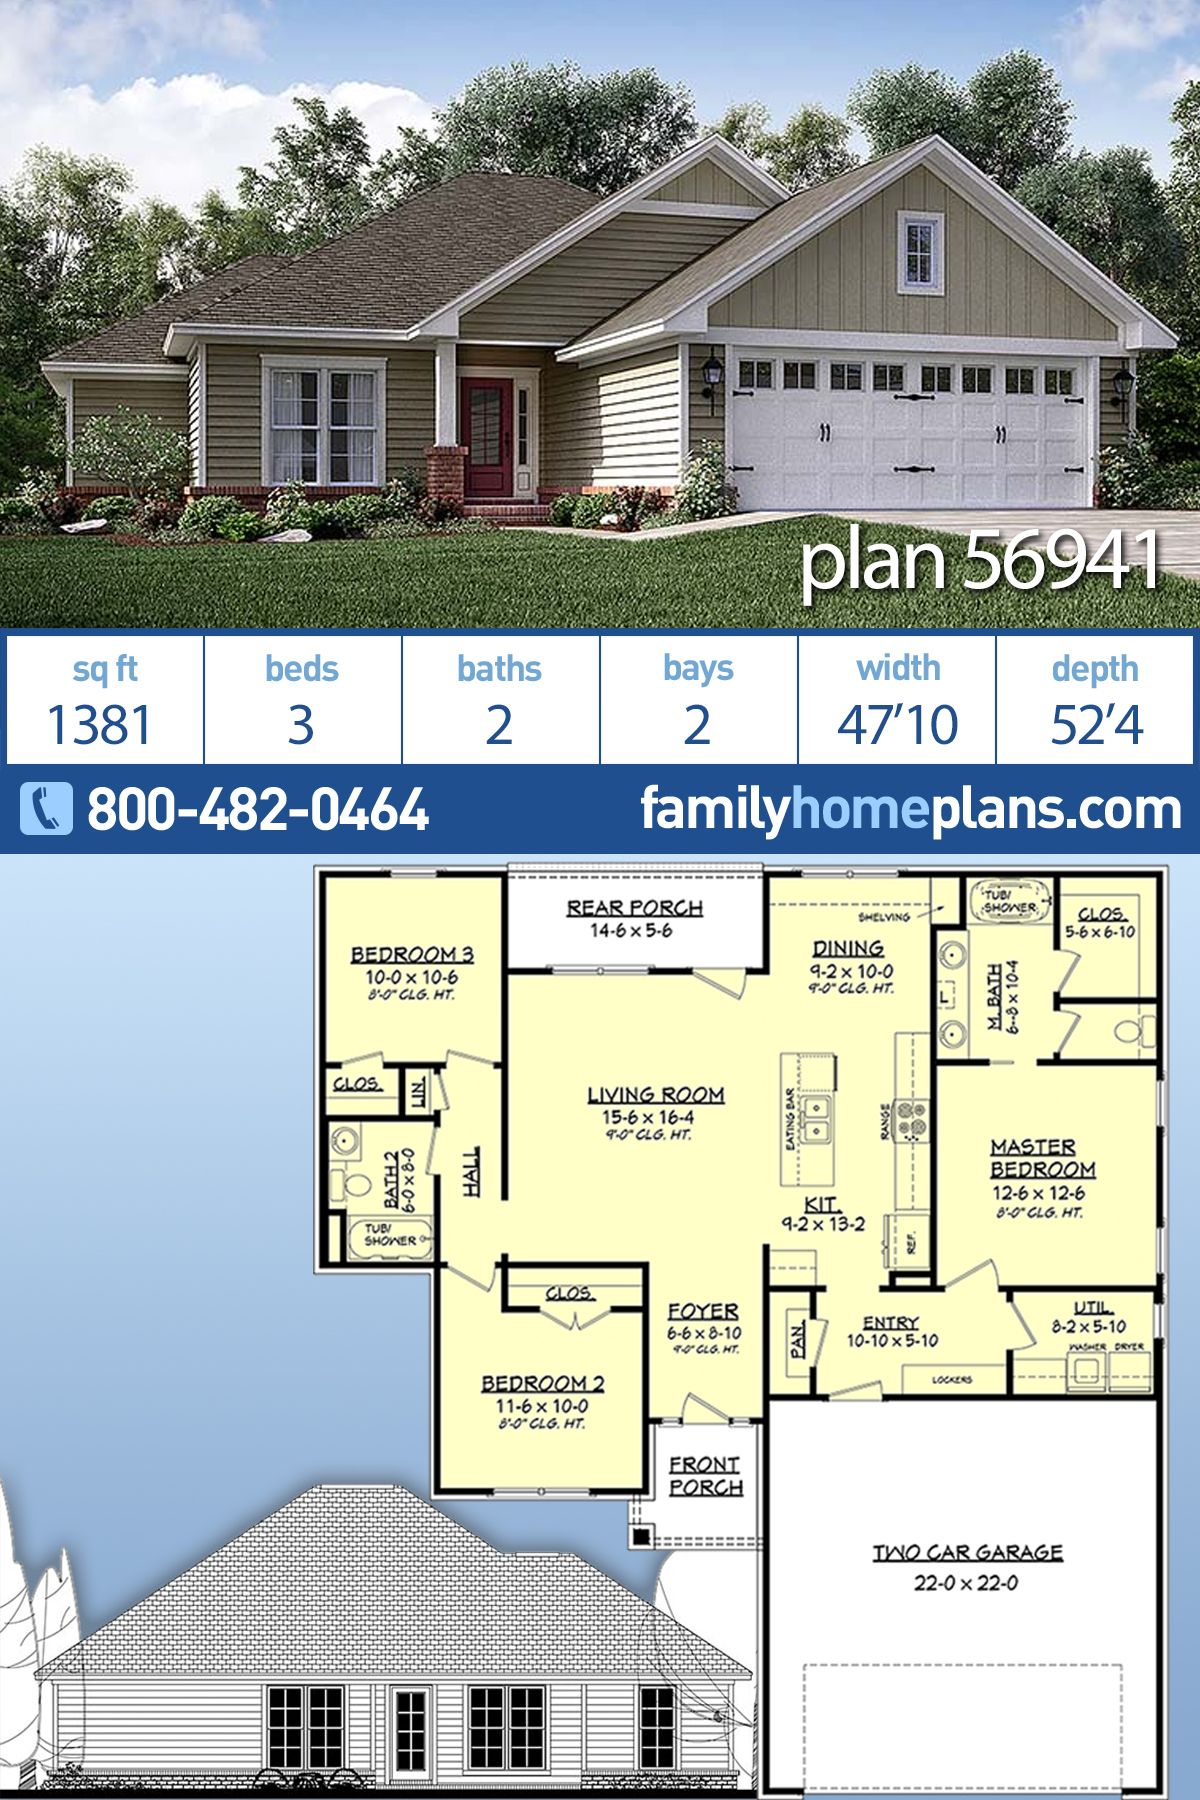 Traditional Style House Plan 56941 With 3 Bed 2 Bath 2 Car Garage Family House Plans House Plans Traditional House Plans